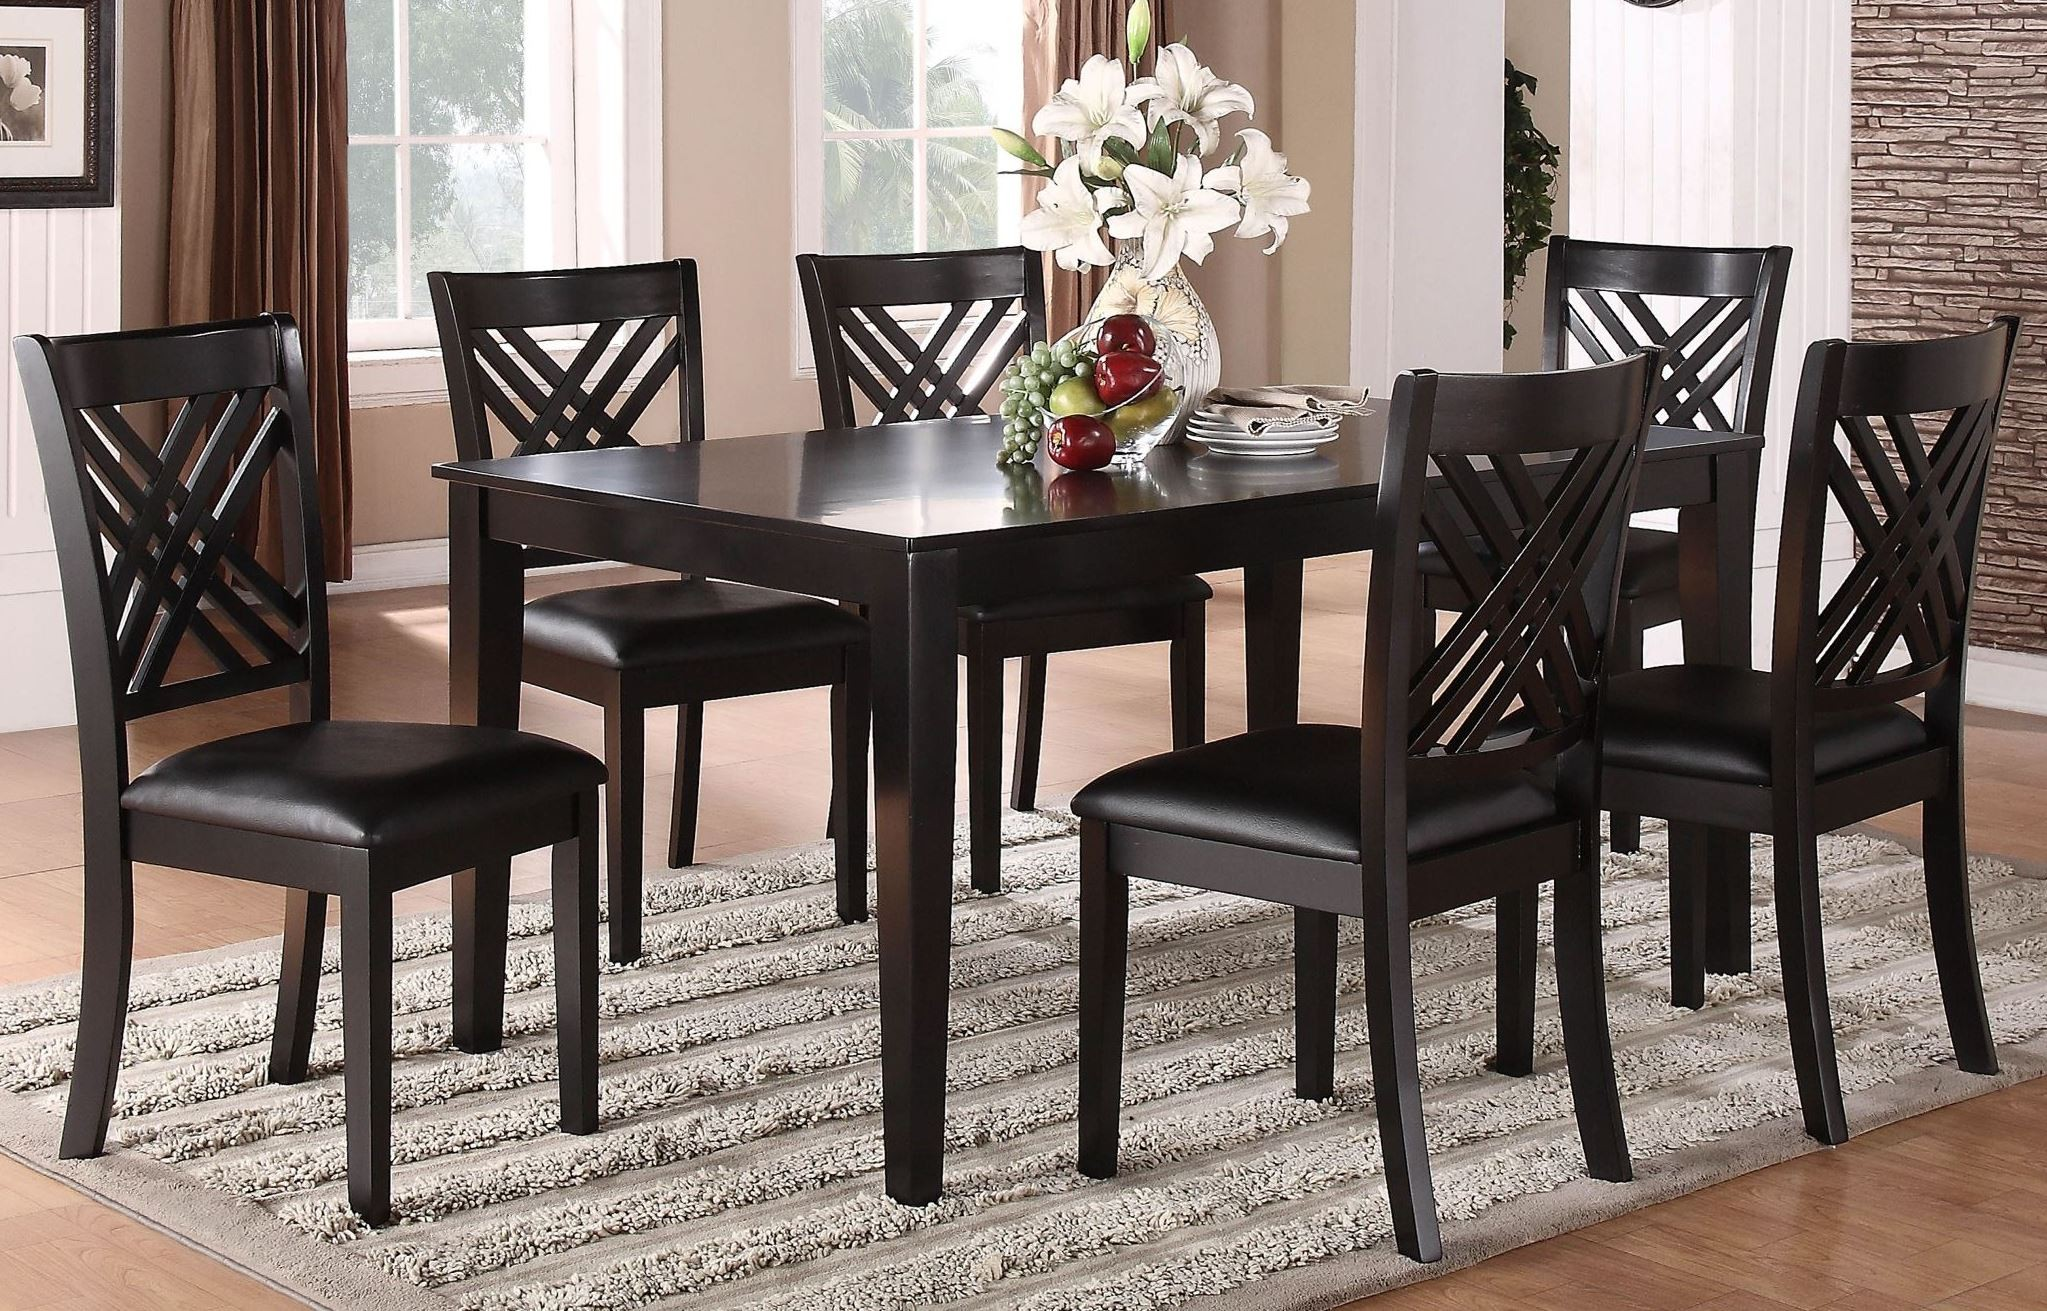 Brooklyn dark espresso 7 piece dining room set 18762 for 7 piece dining room set